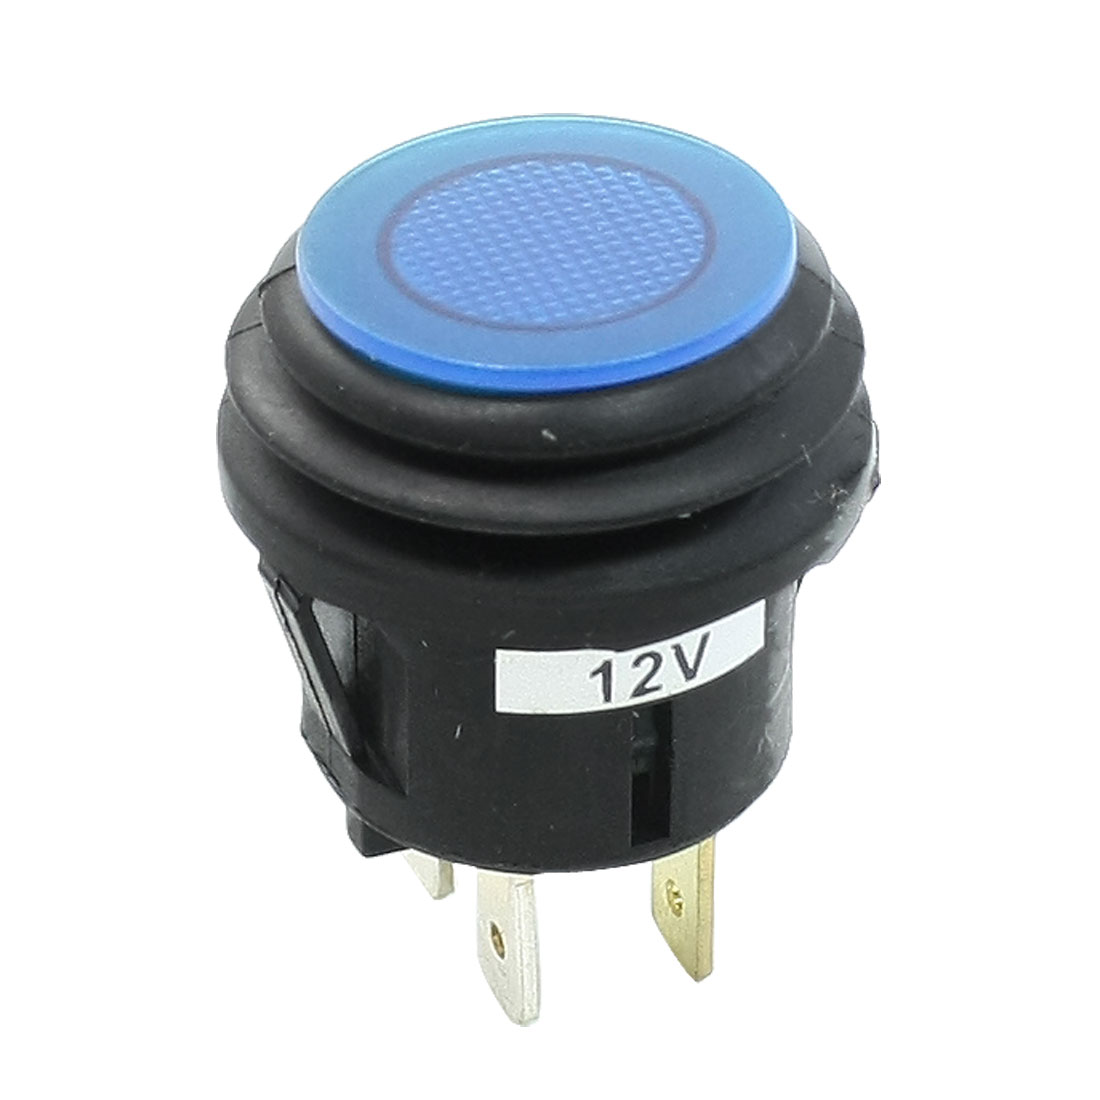 Blue Indicator Lamp Latching SPST Car Auto Push Button Switch DC 12V 20A